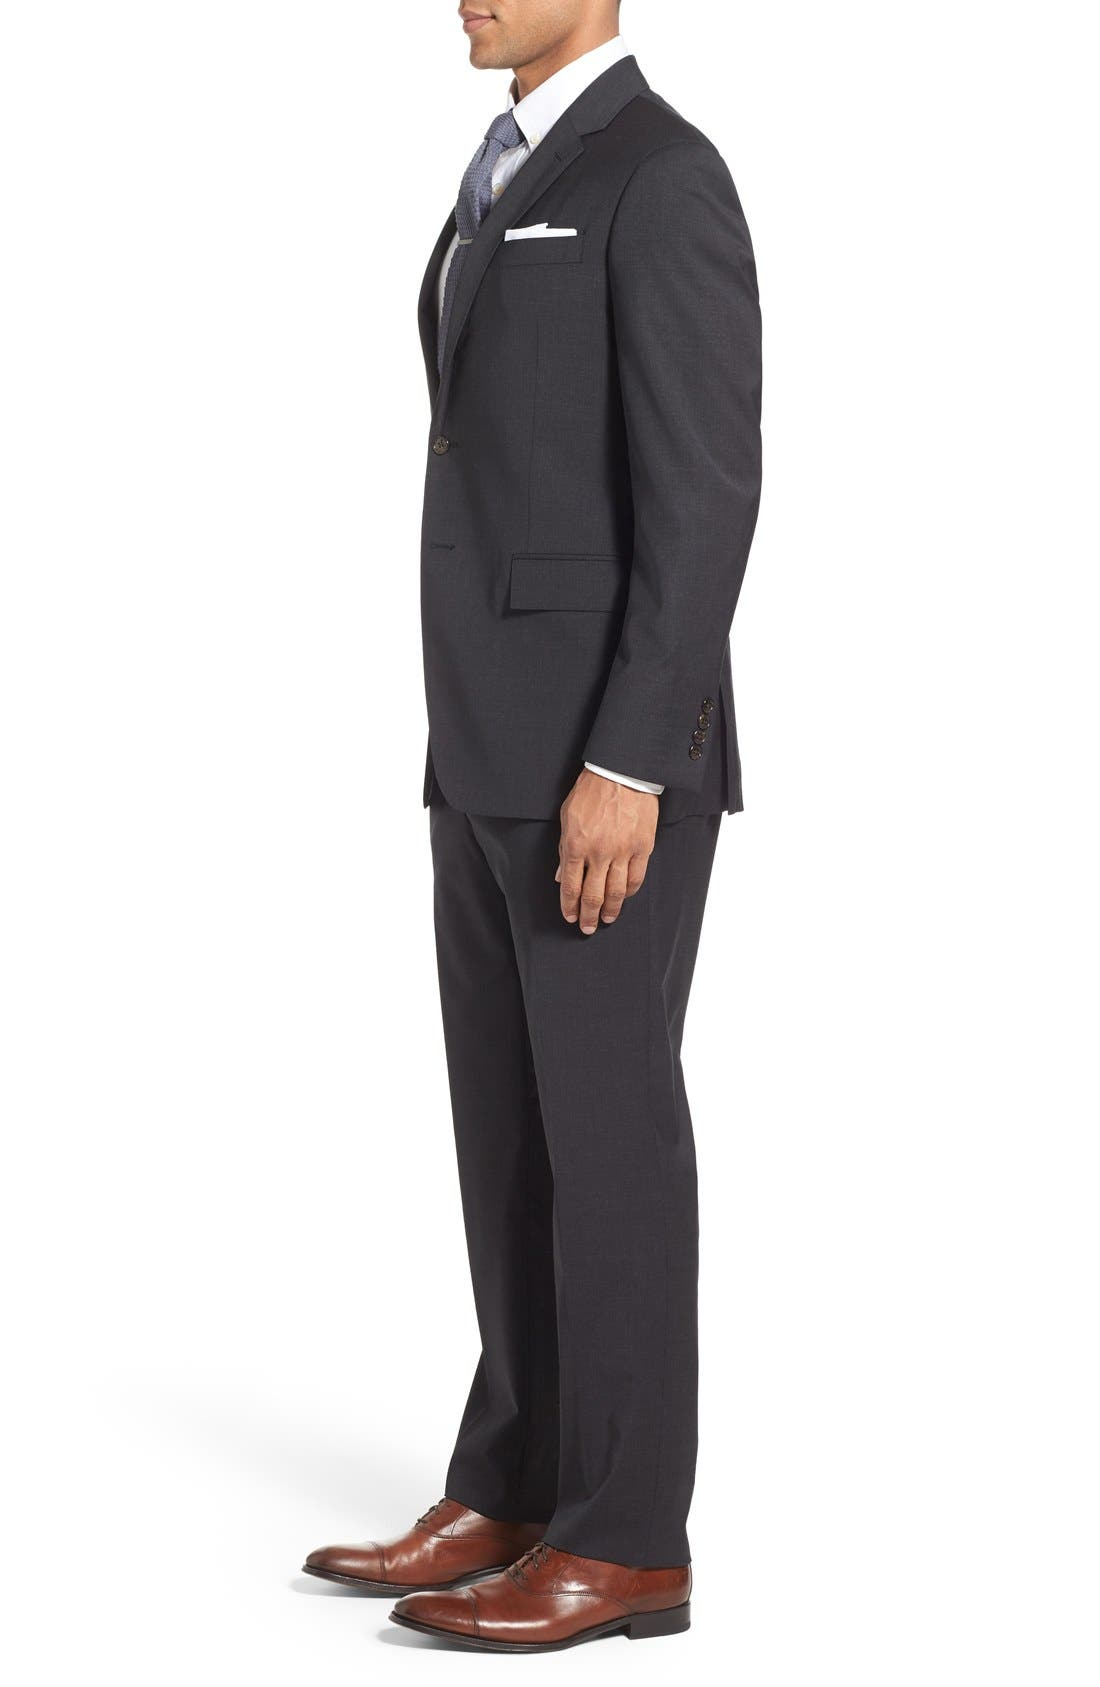 Alternate Image 3  - Todd Snyder White Label 'May Fair' Trim Fit Solid Stretch Wool Suit